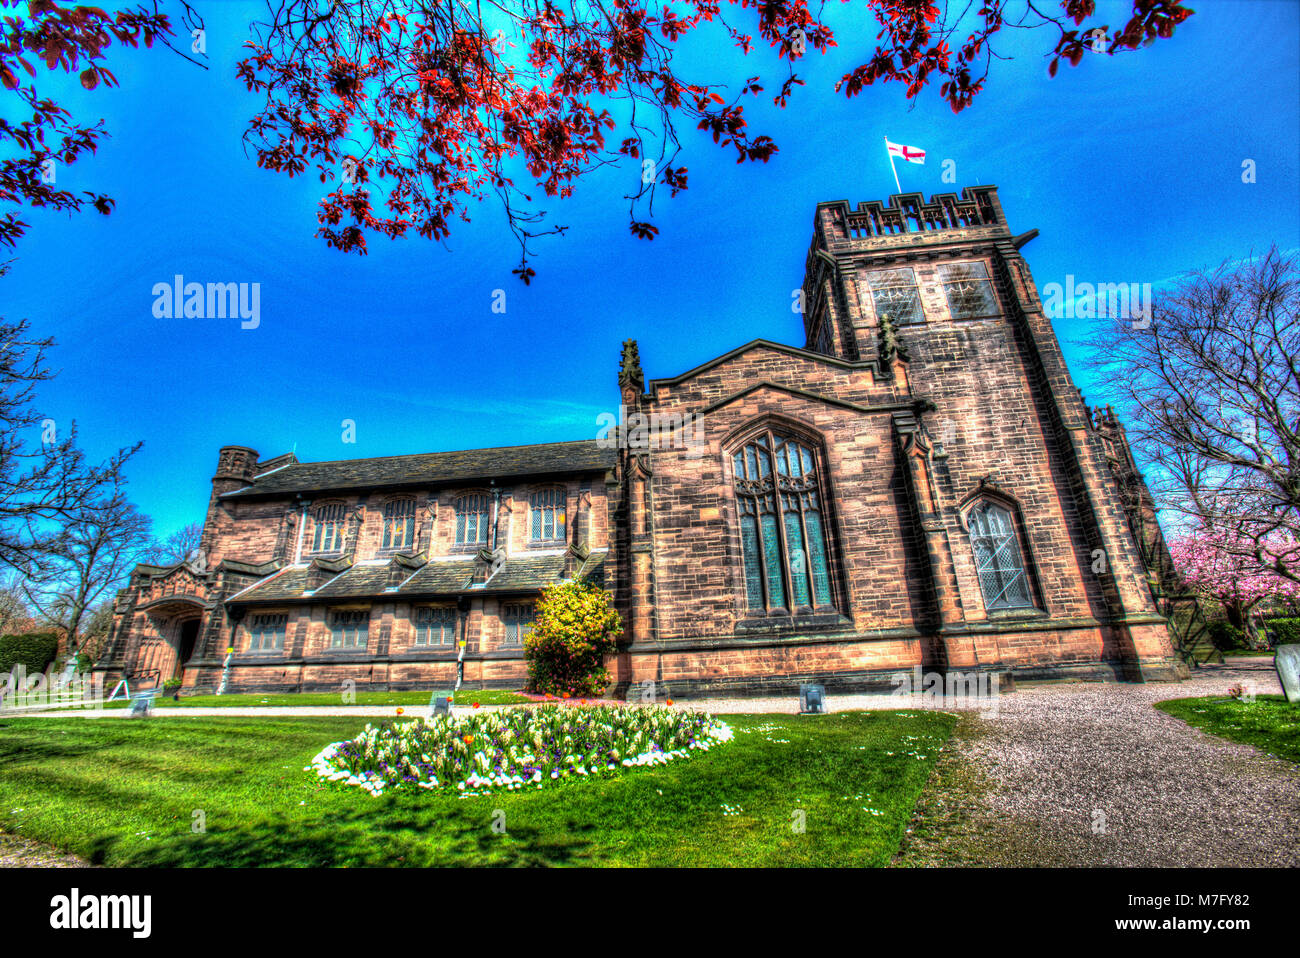 Village of Port Sunlight, England. Artistic spring view of Port Sunlight's Christ Church. - Stock Image